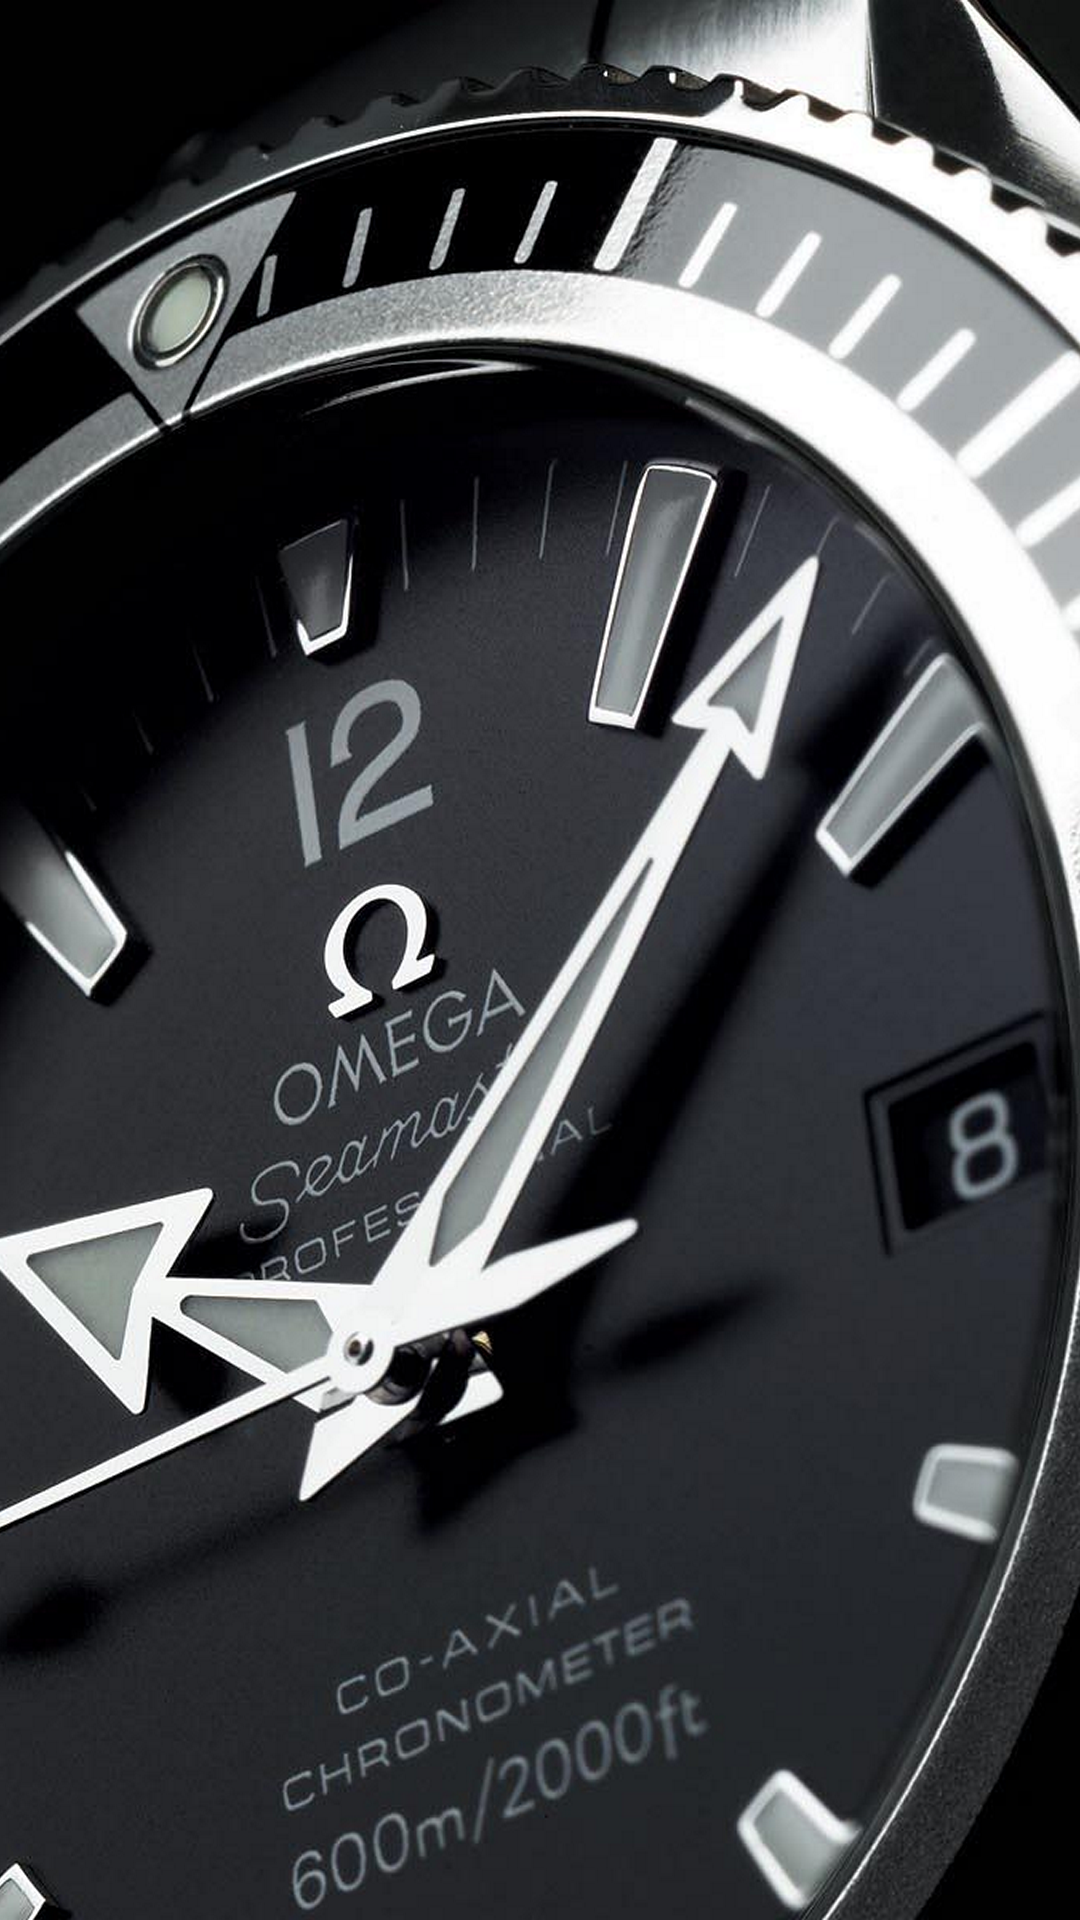 Omega Seamaster Planet Ocean 45.5MM, wallpapers for Samsung Galaxy S4, fondos galaxy s4, fondos de pantalla galaxy s4, sfondi samsung galaxy s4, hintergrund HD 1080x1920